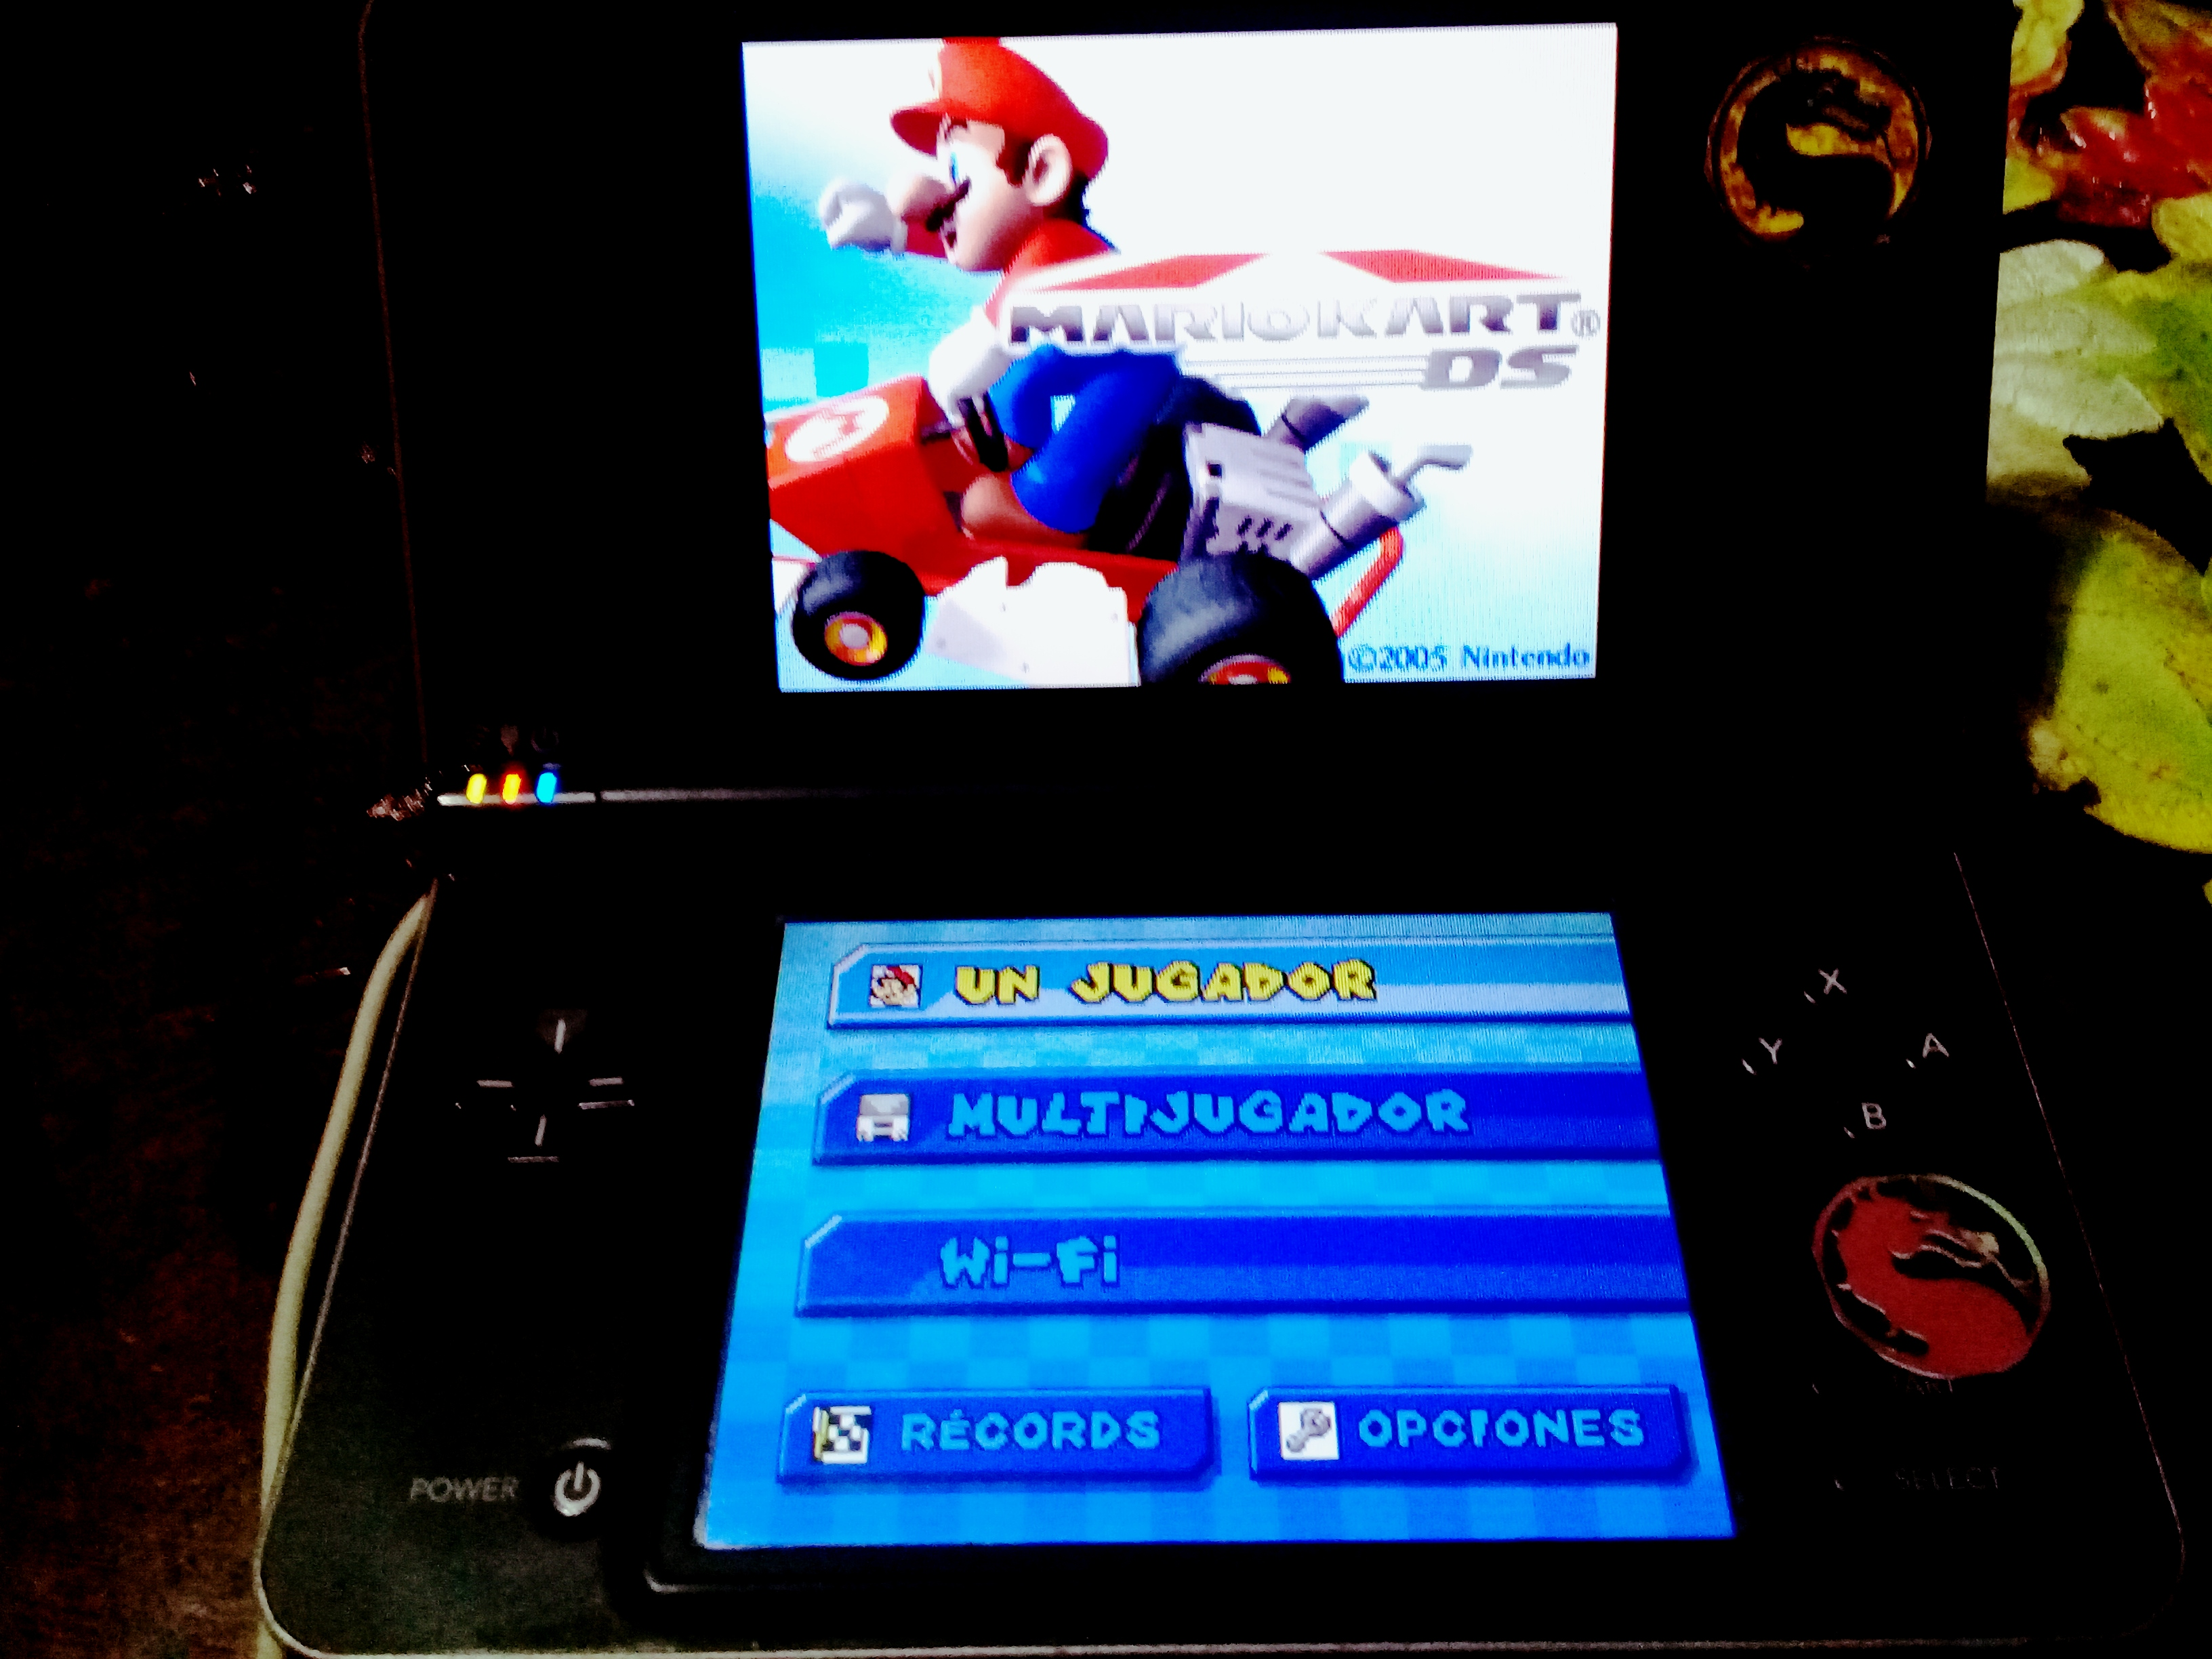 omargeddon: Mario Kart DS: DK Pass [100cc] (Nintendo DS) 0:03:00.42 points on 2020-09-14 15:44:13